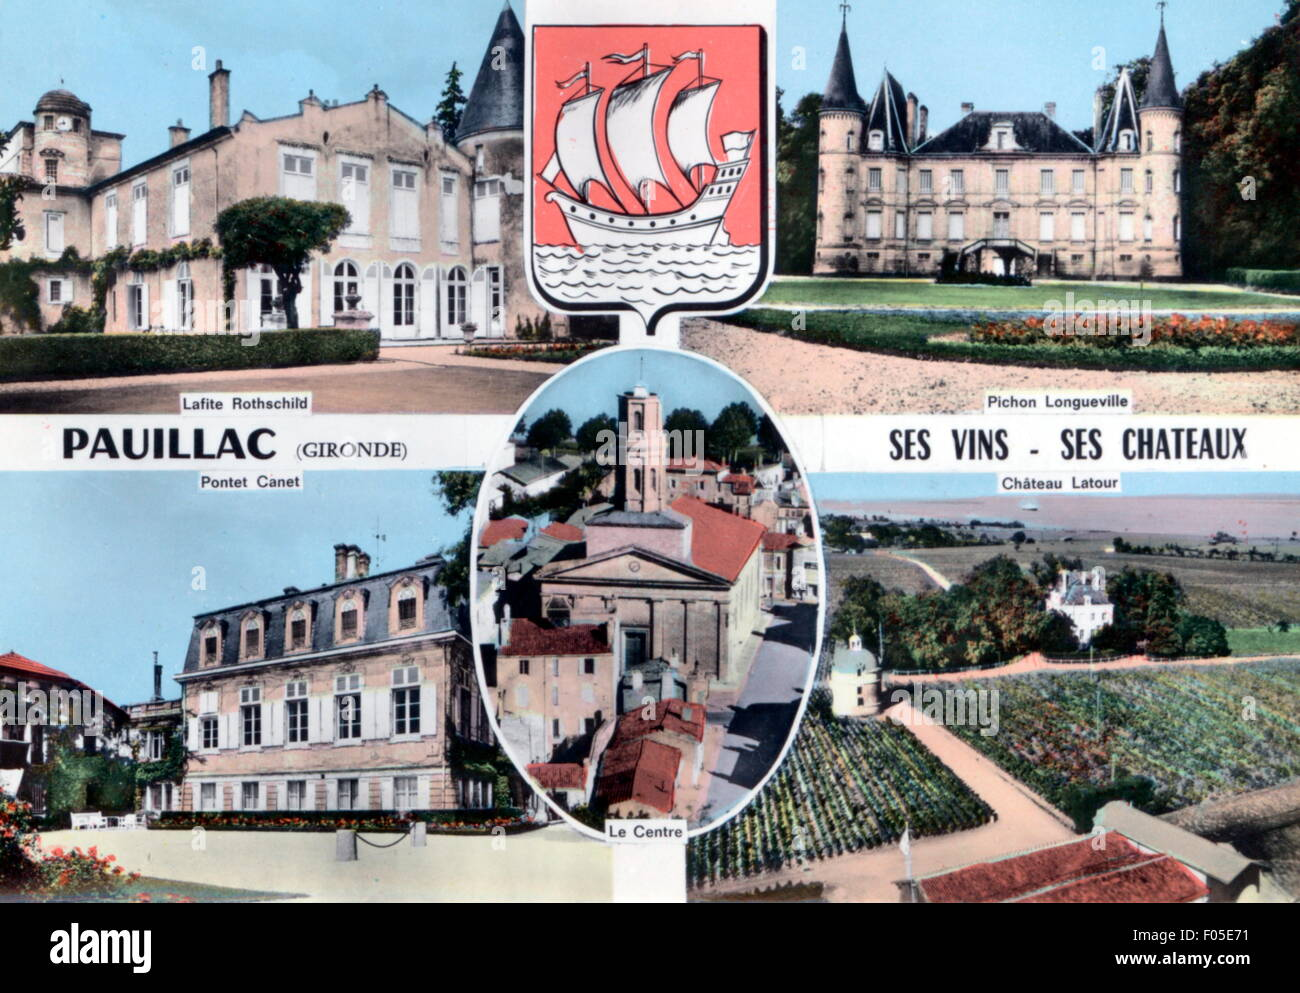 geography / travel, France, Pauillac, centre and castles Lafitte-Rothschild, Pichon-Longueville, Pontet-Canet and - Stock Image